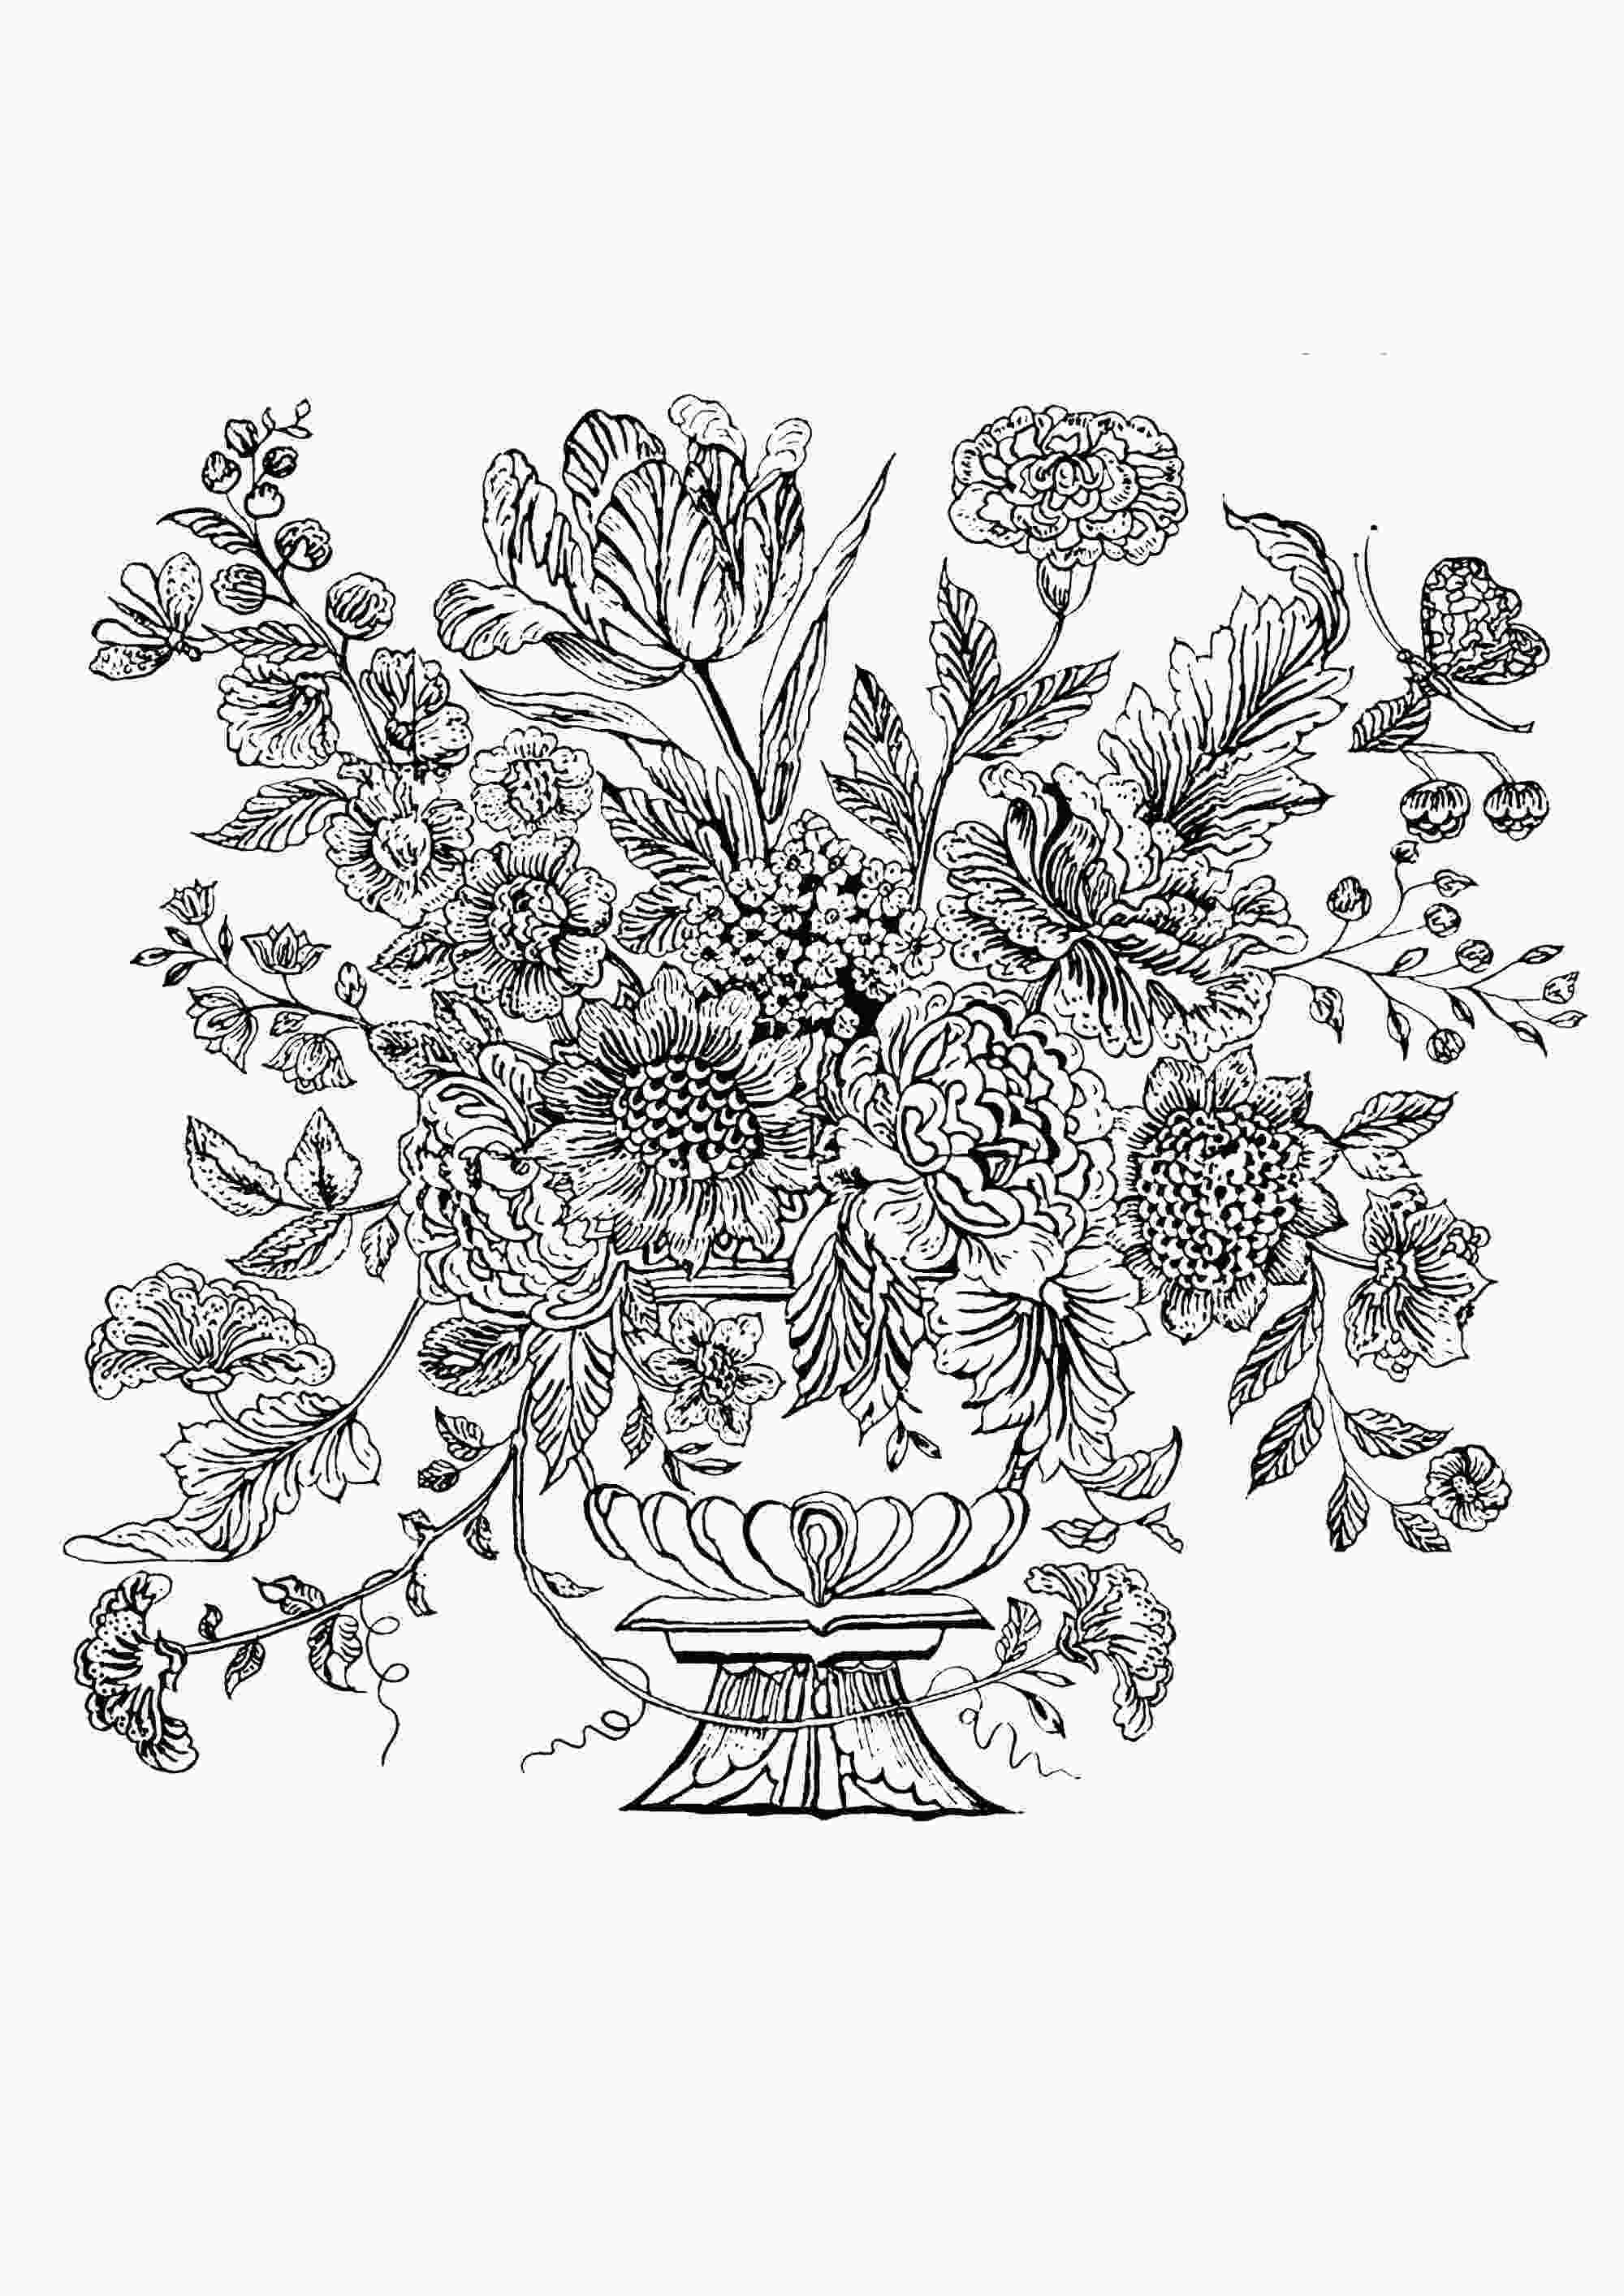 flowers in vase coloring pages flower vase 1740 mural tile flowers adult coloring pages